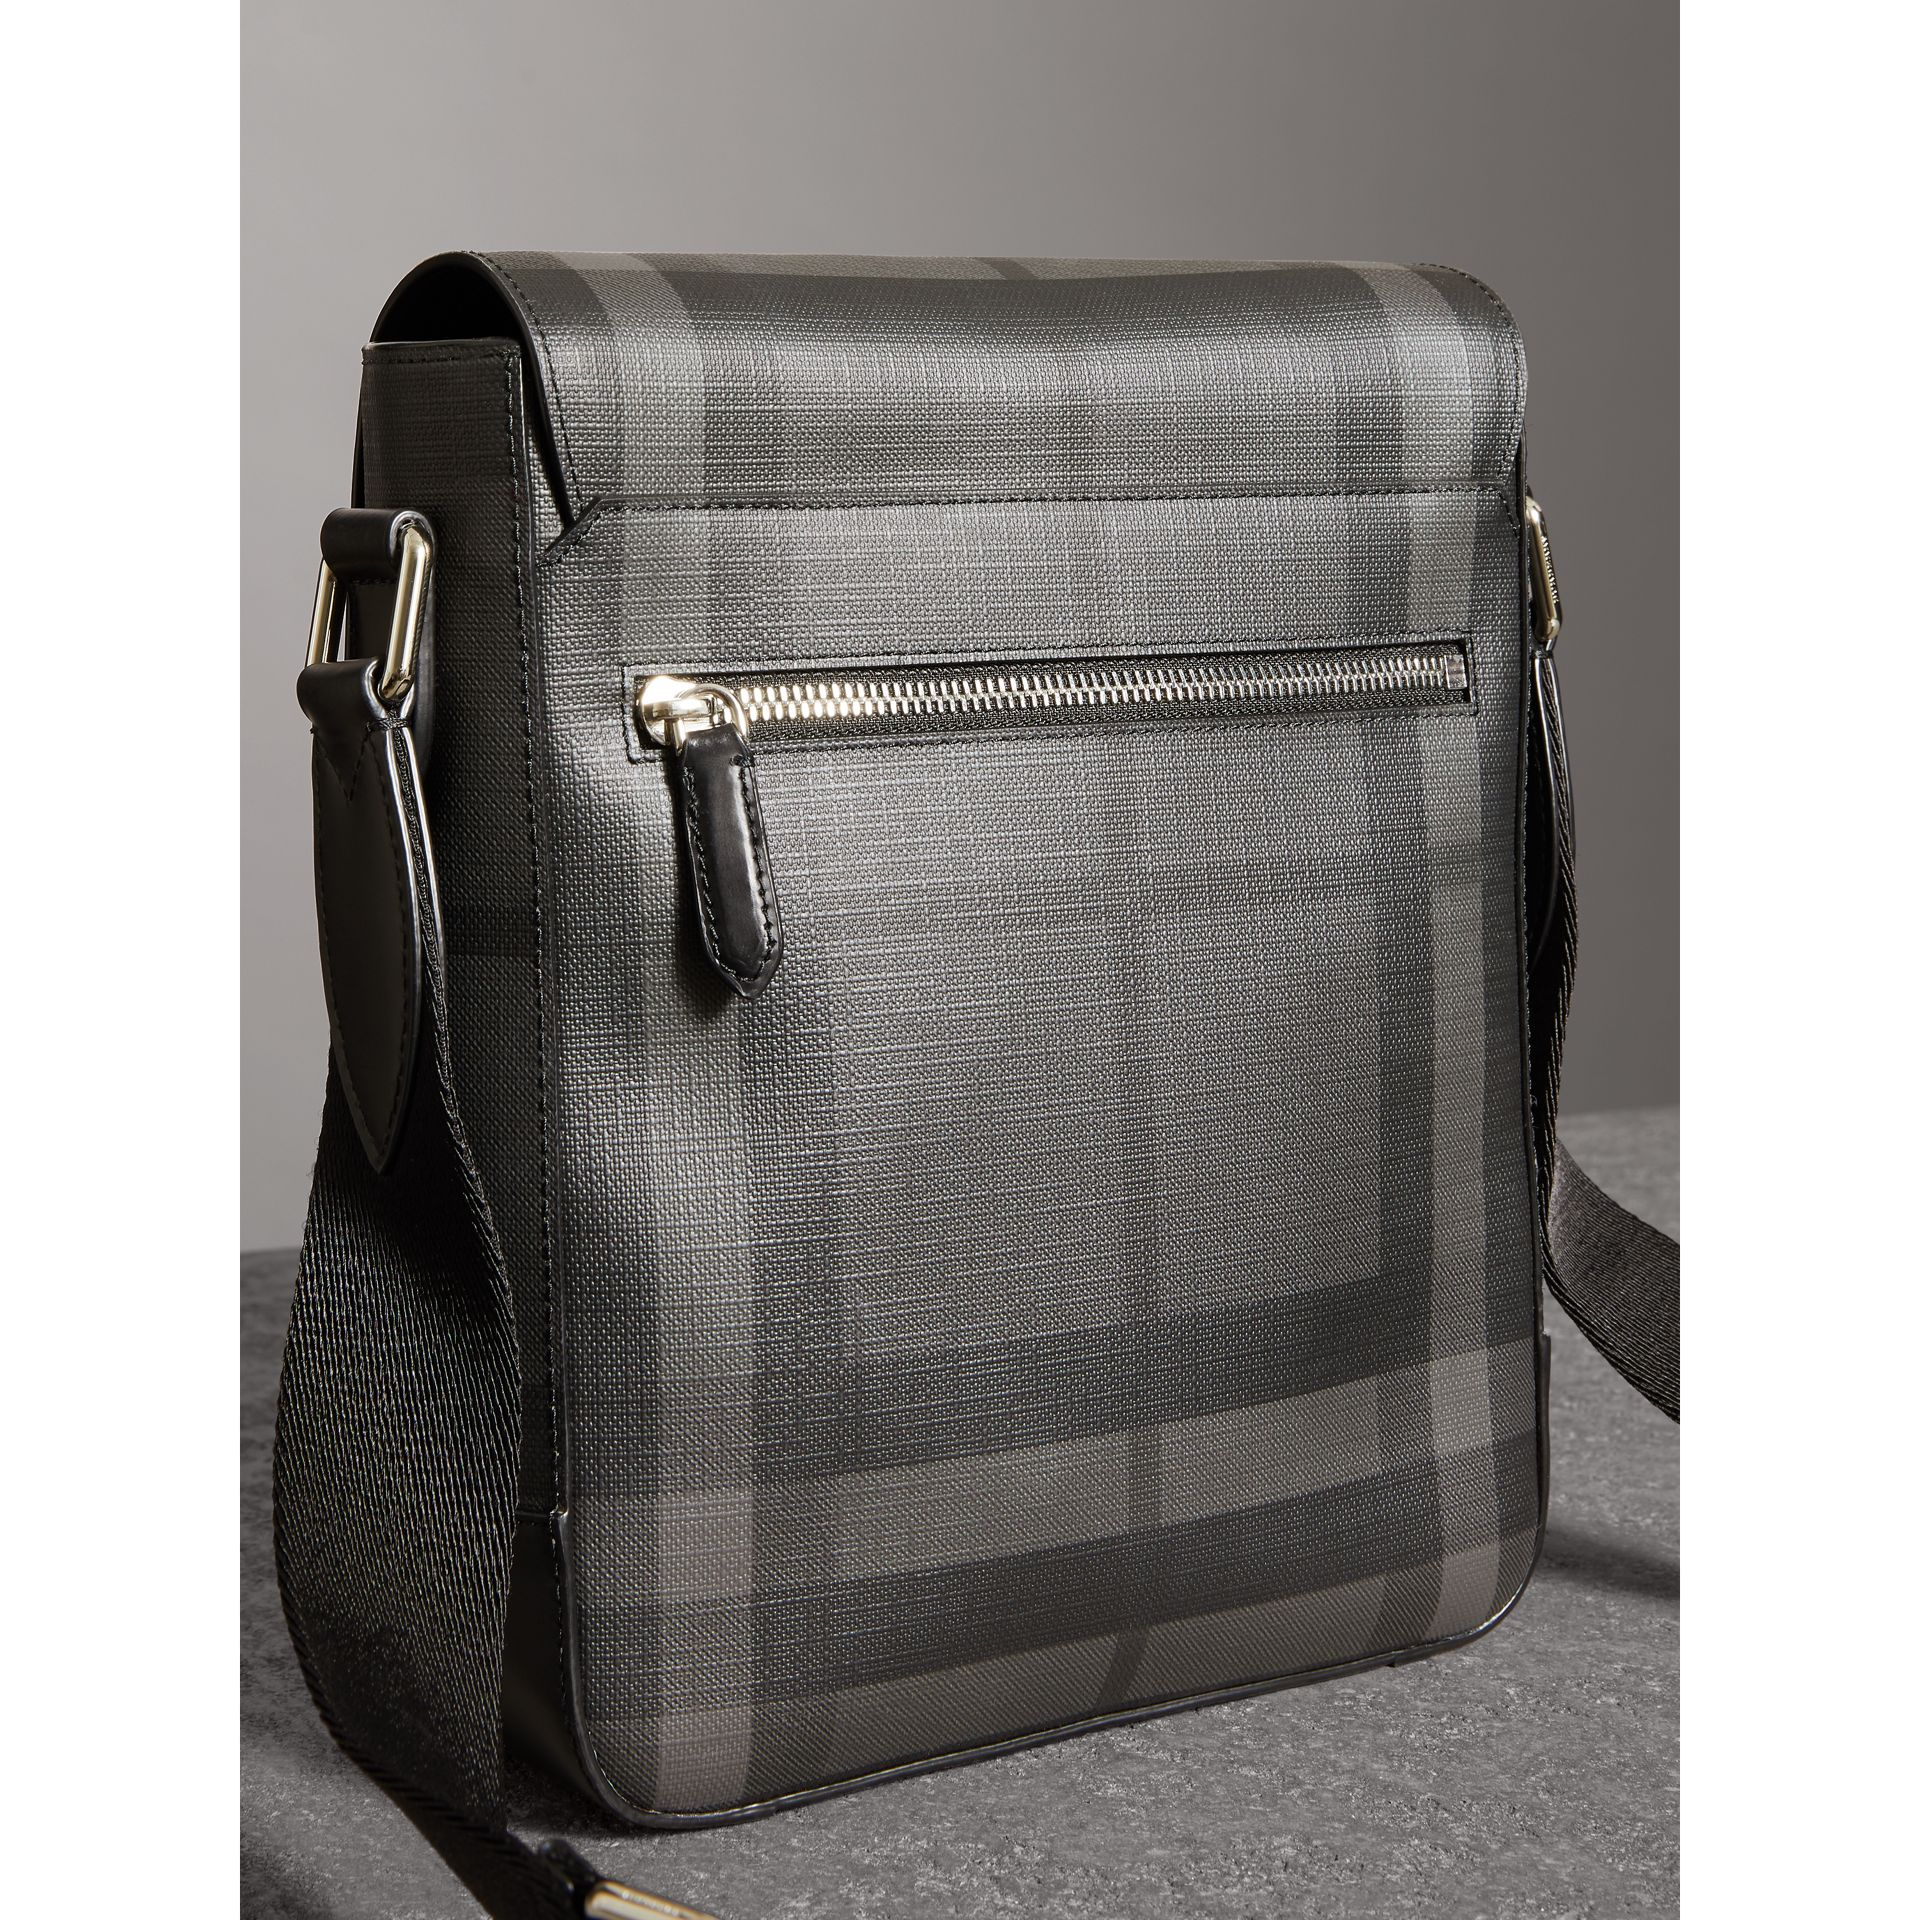 Tag Print London Check Crossbody Bag in Charcoal - Men | Burberry - gallery image 4